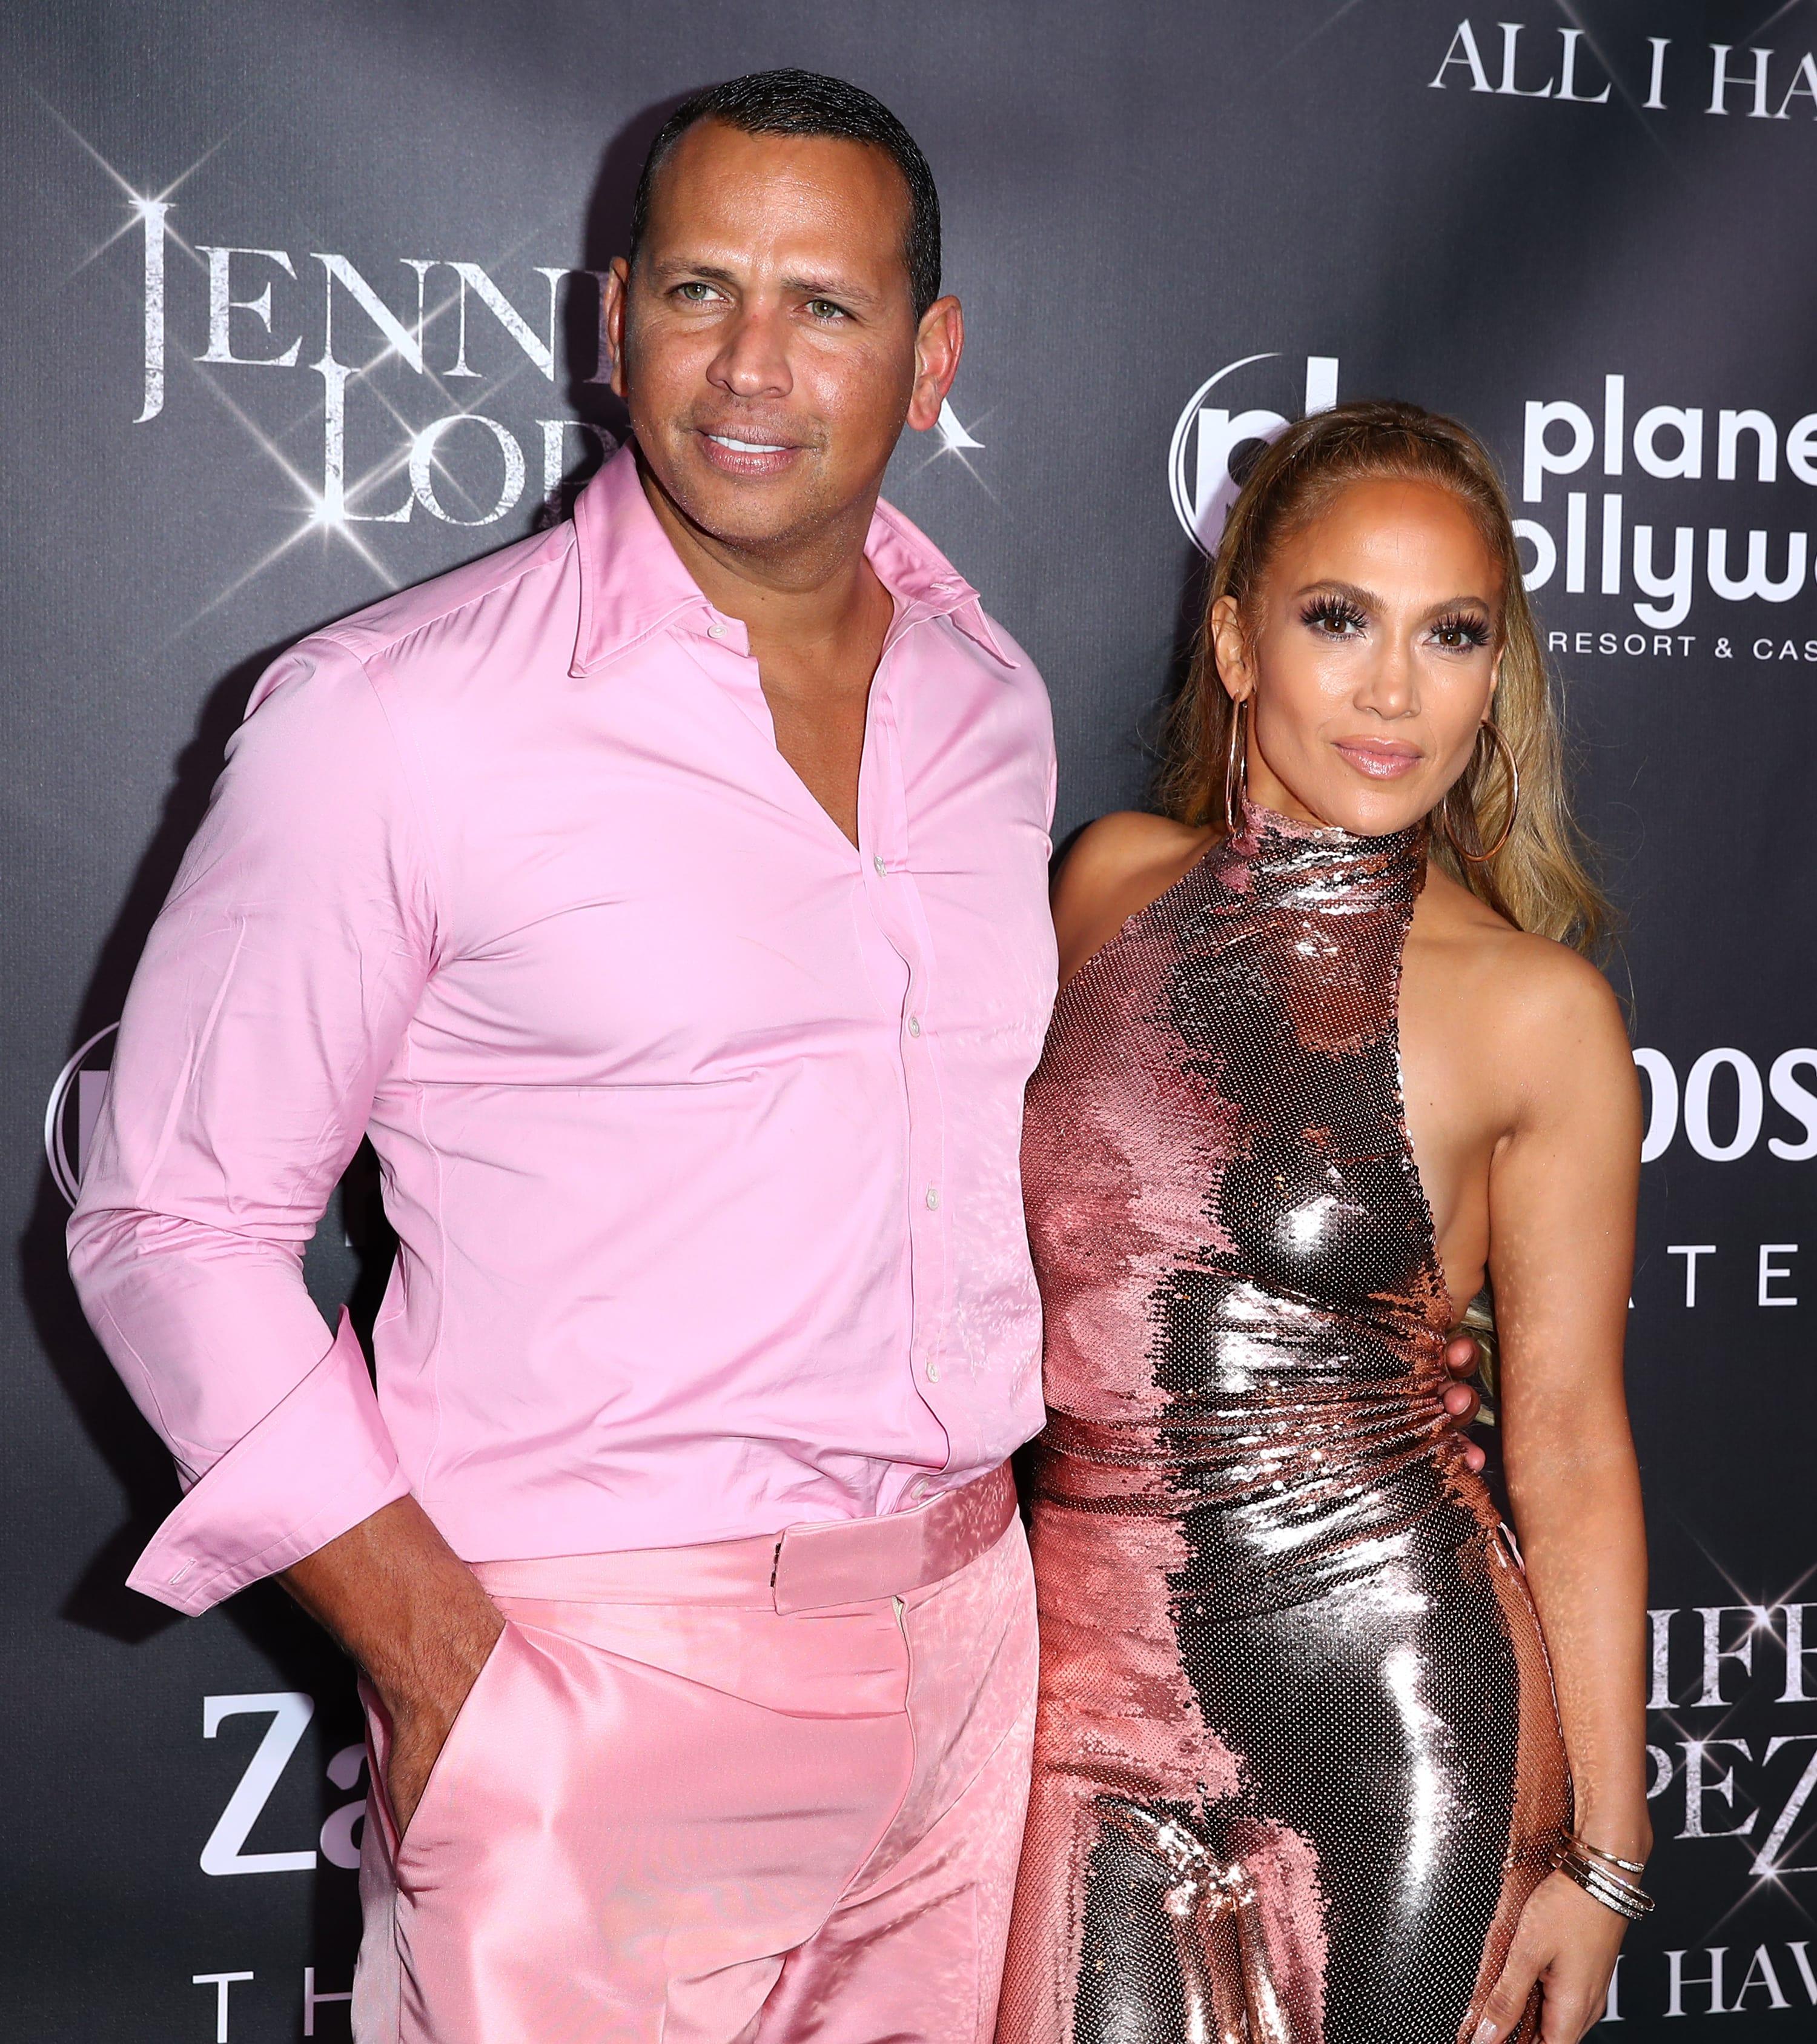 Jennifer Lopez Latest News Photos and Videos